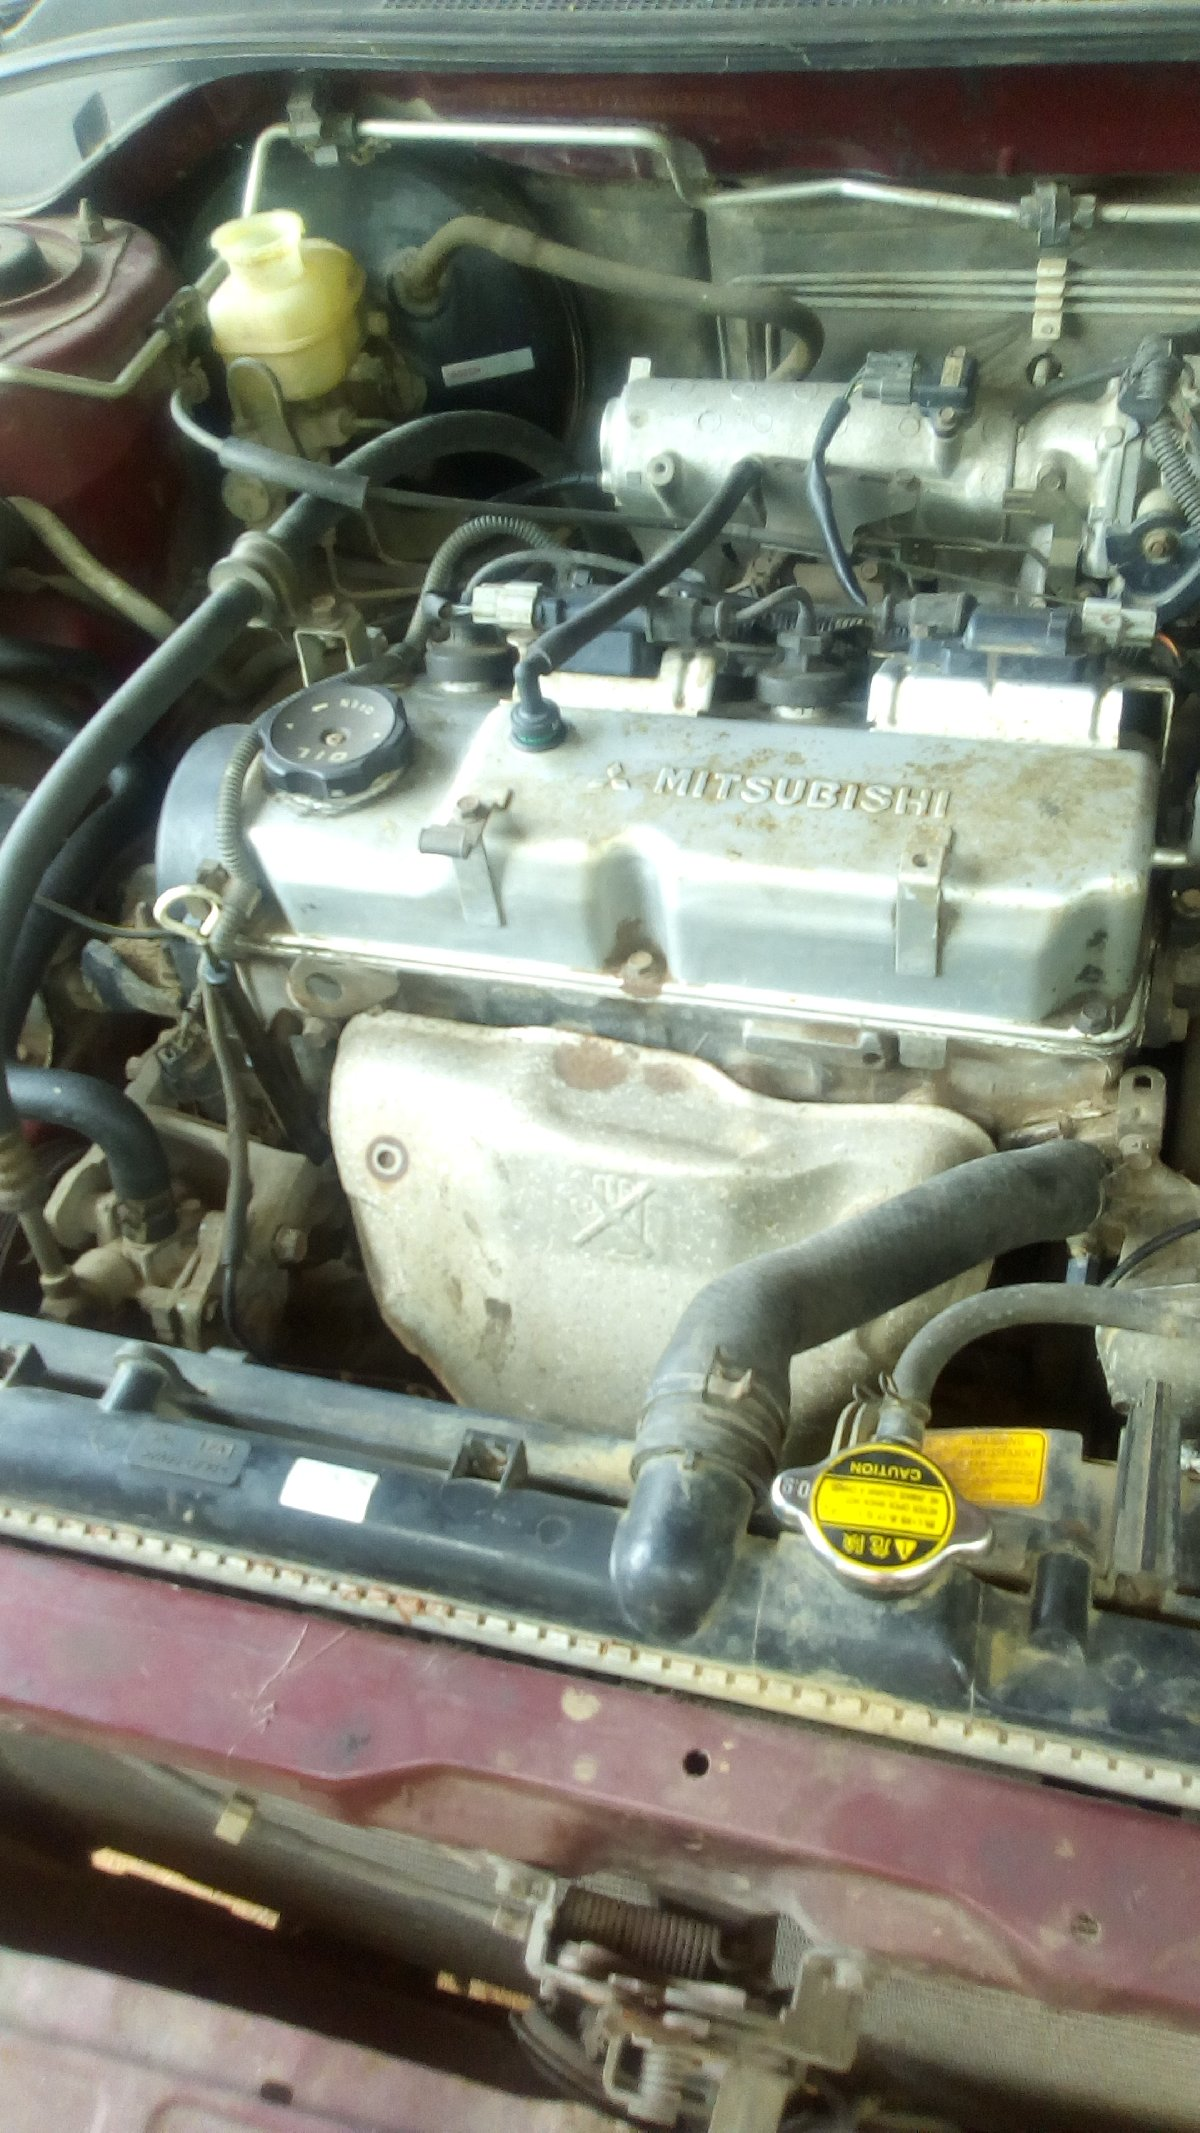 Mitsubishi Lancer 2002 Transmission And Engine For Sale In Manchester Kingston St Andrew Auto Parts